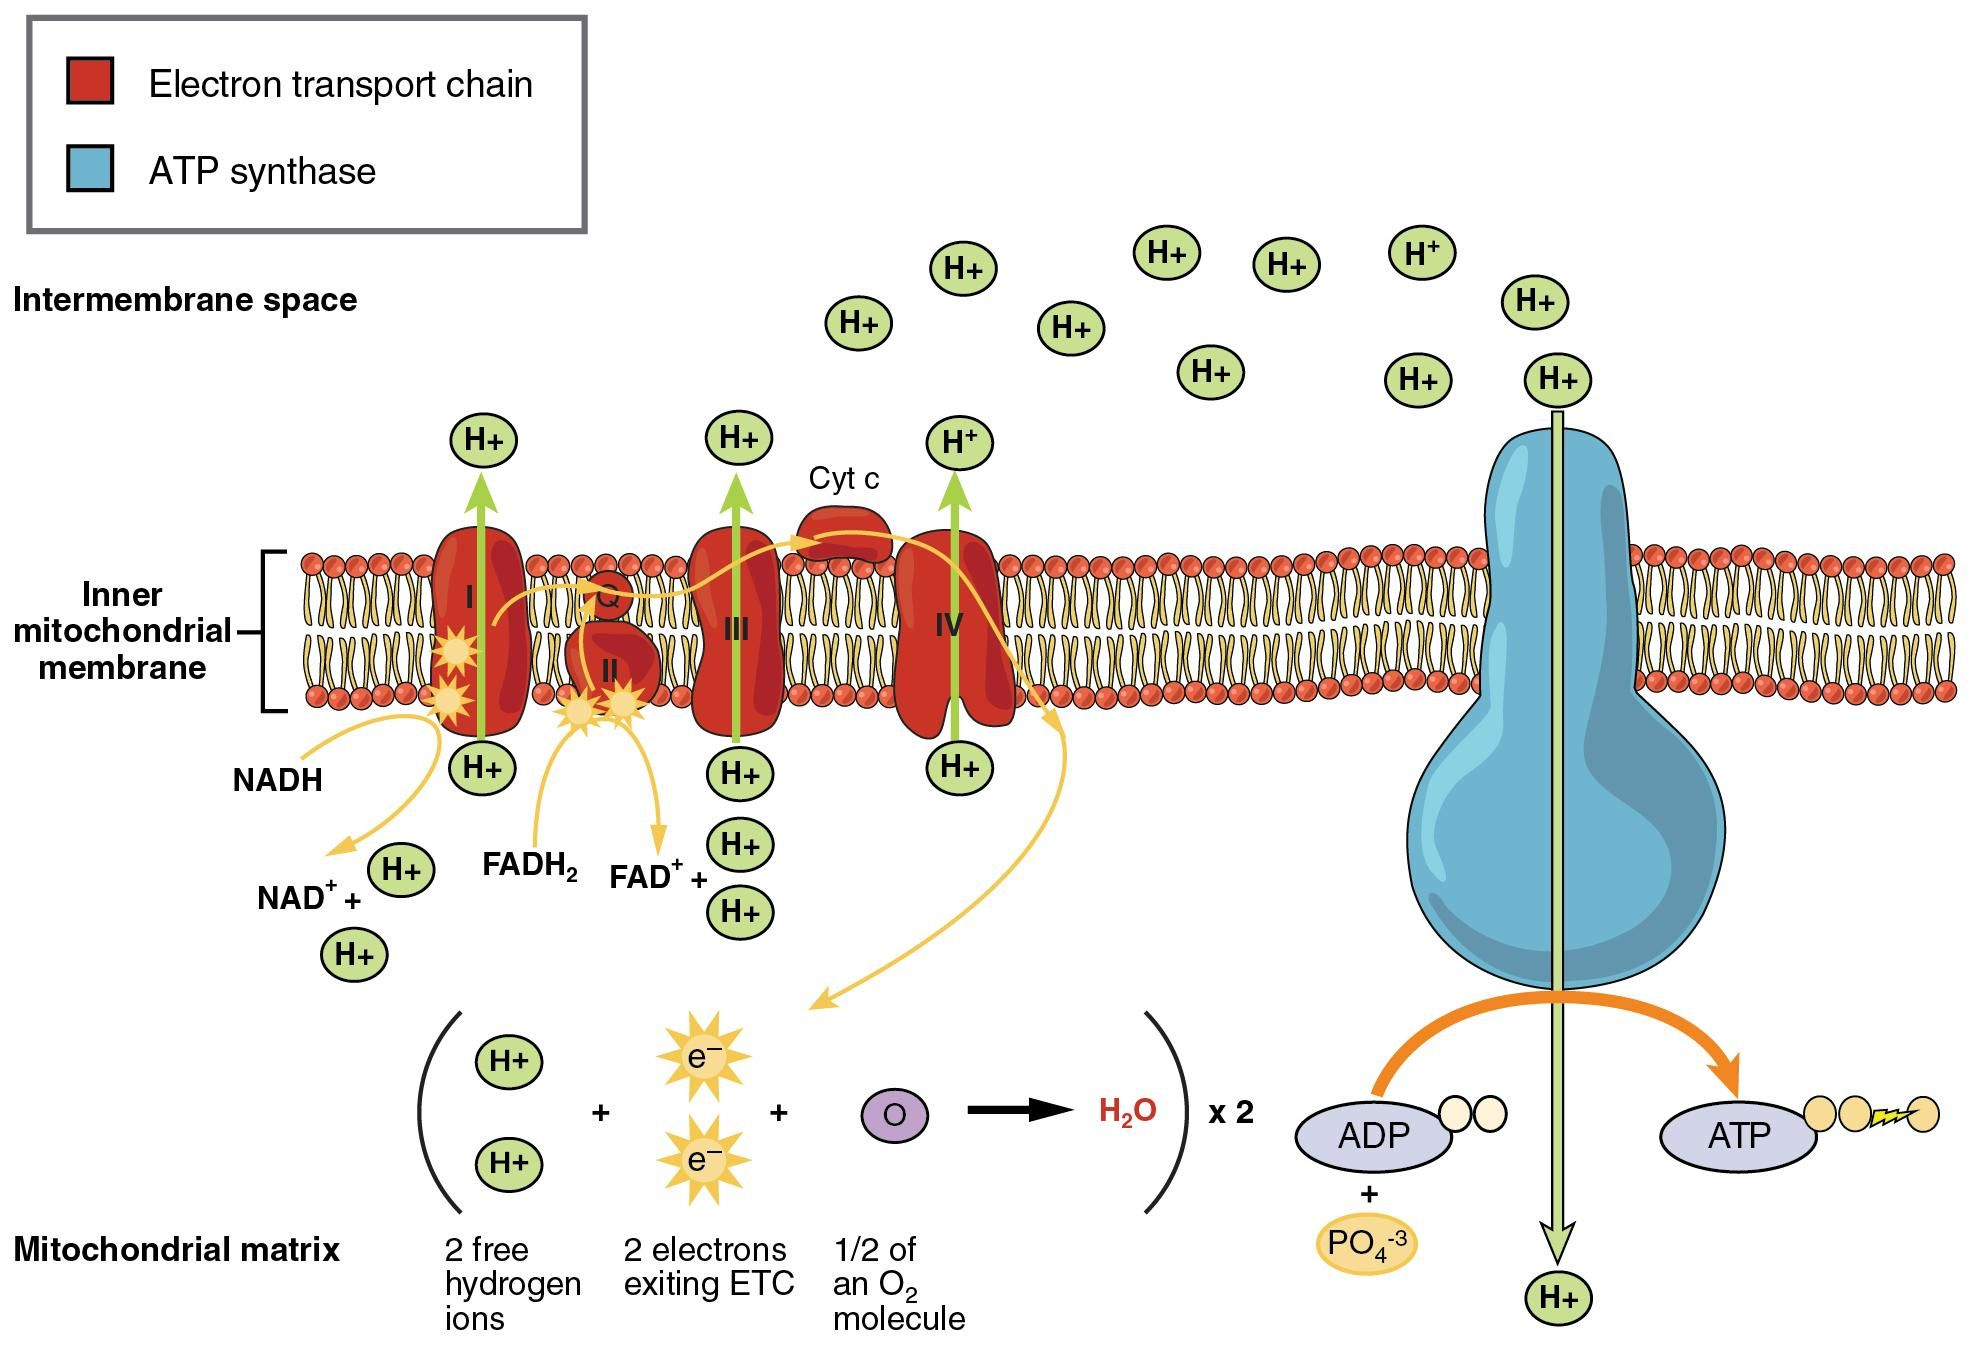 Cellular Respiration (Electron Transport Chain)